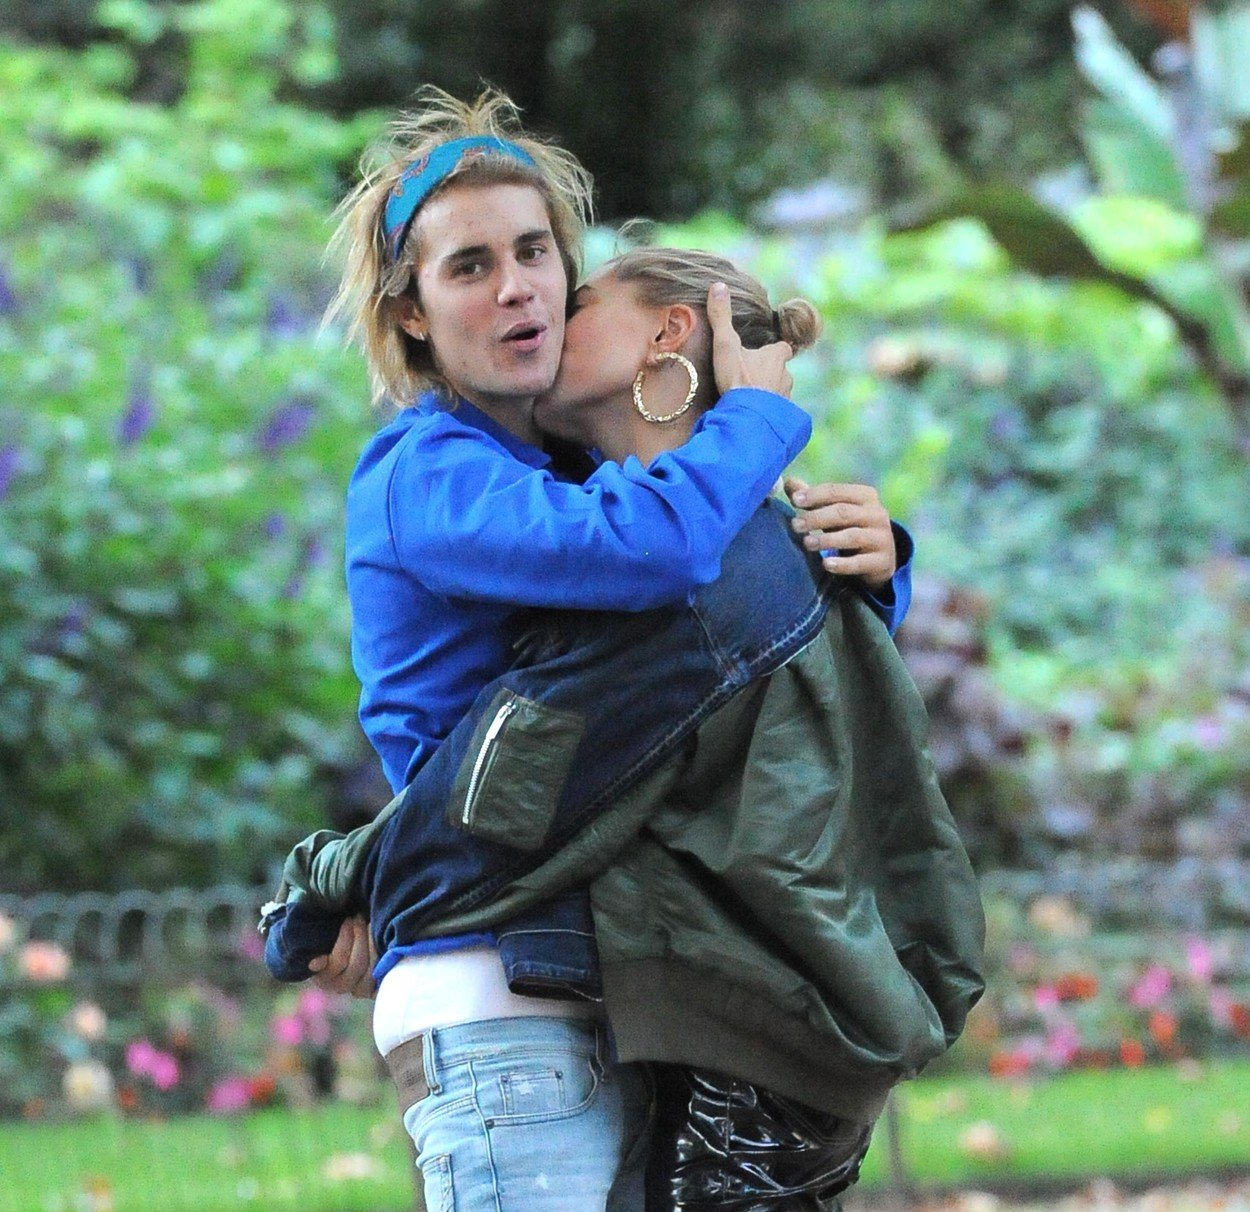 , London, England - 20180917 Justin Bieber and Hailey Baldwin Show Some PDA While Strolling at a Park  -PICTURED: Justin Bieber -, Image: 387126540, License: Rights-managed, Restrictions: , Model Release: no, Credit line: Profimedia, INSTAR Images